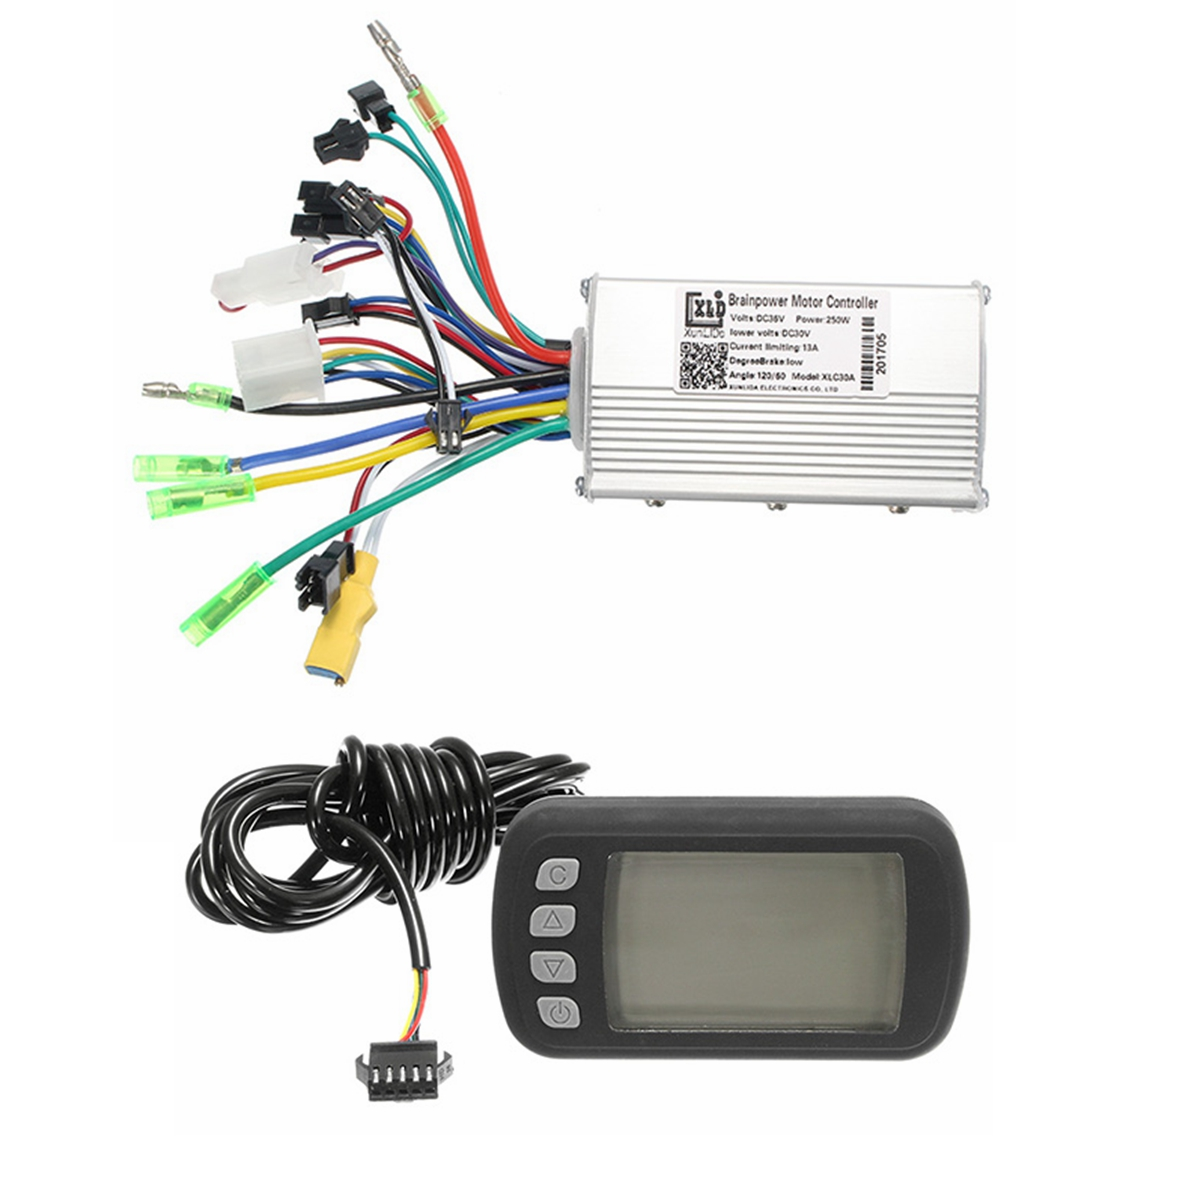 Electric Bike Controller Wires Illustration With Led Display Or Lcd